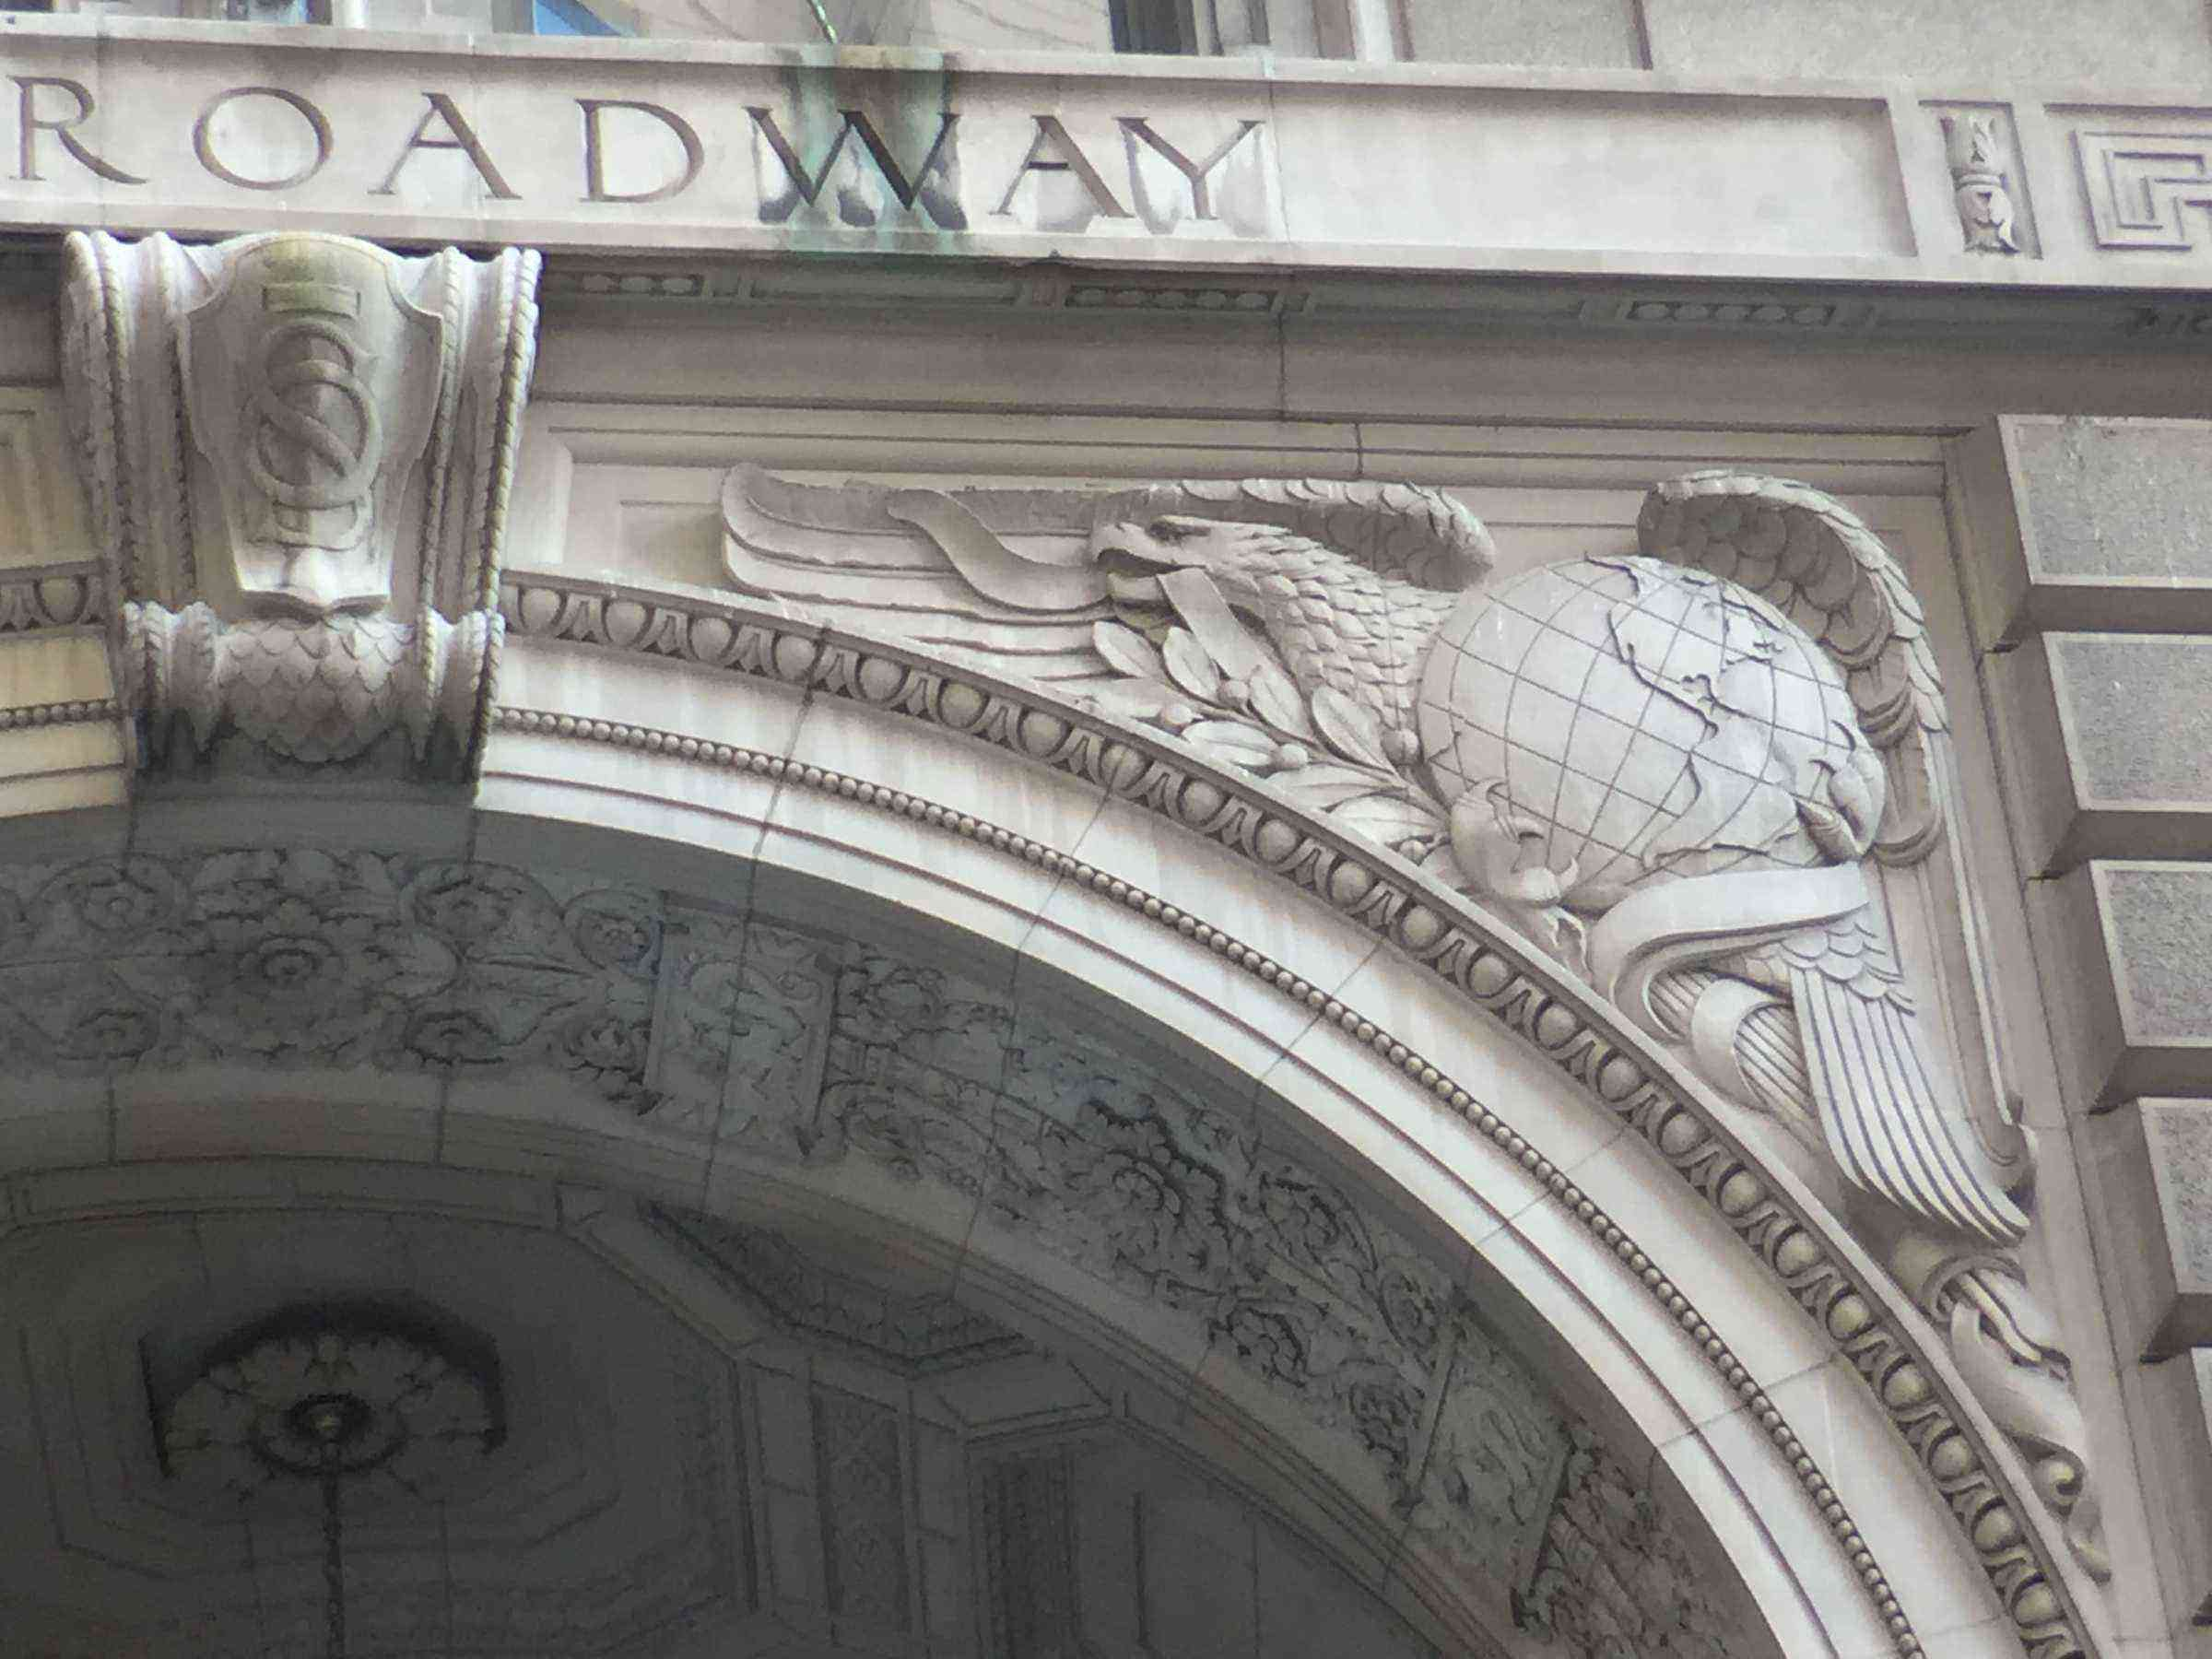 5) 26 Broadway, Eagle Clutches the Americas